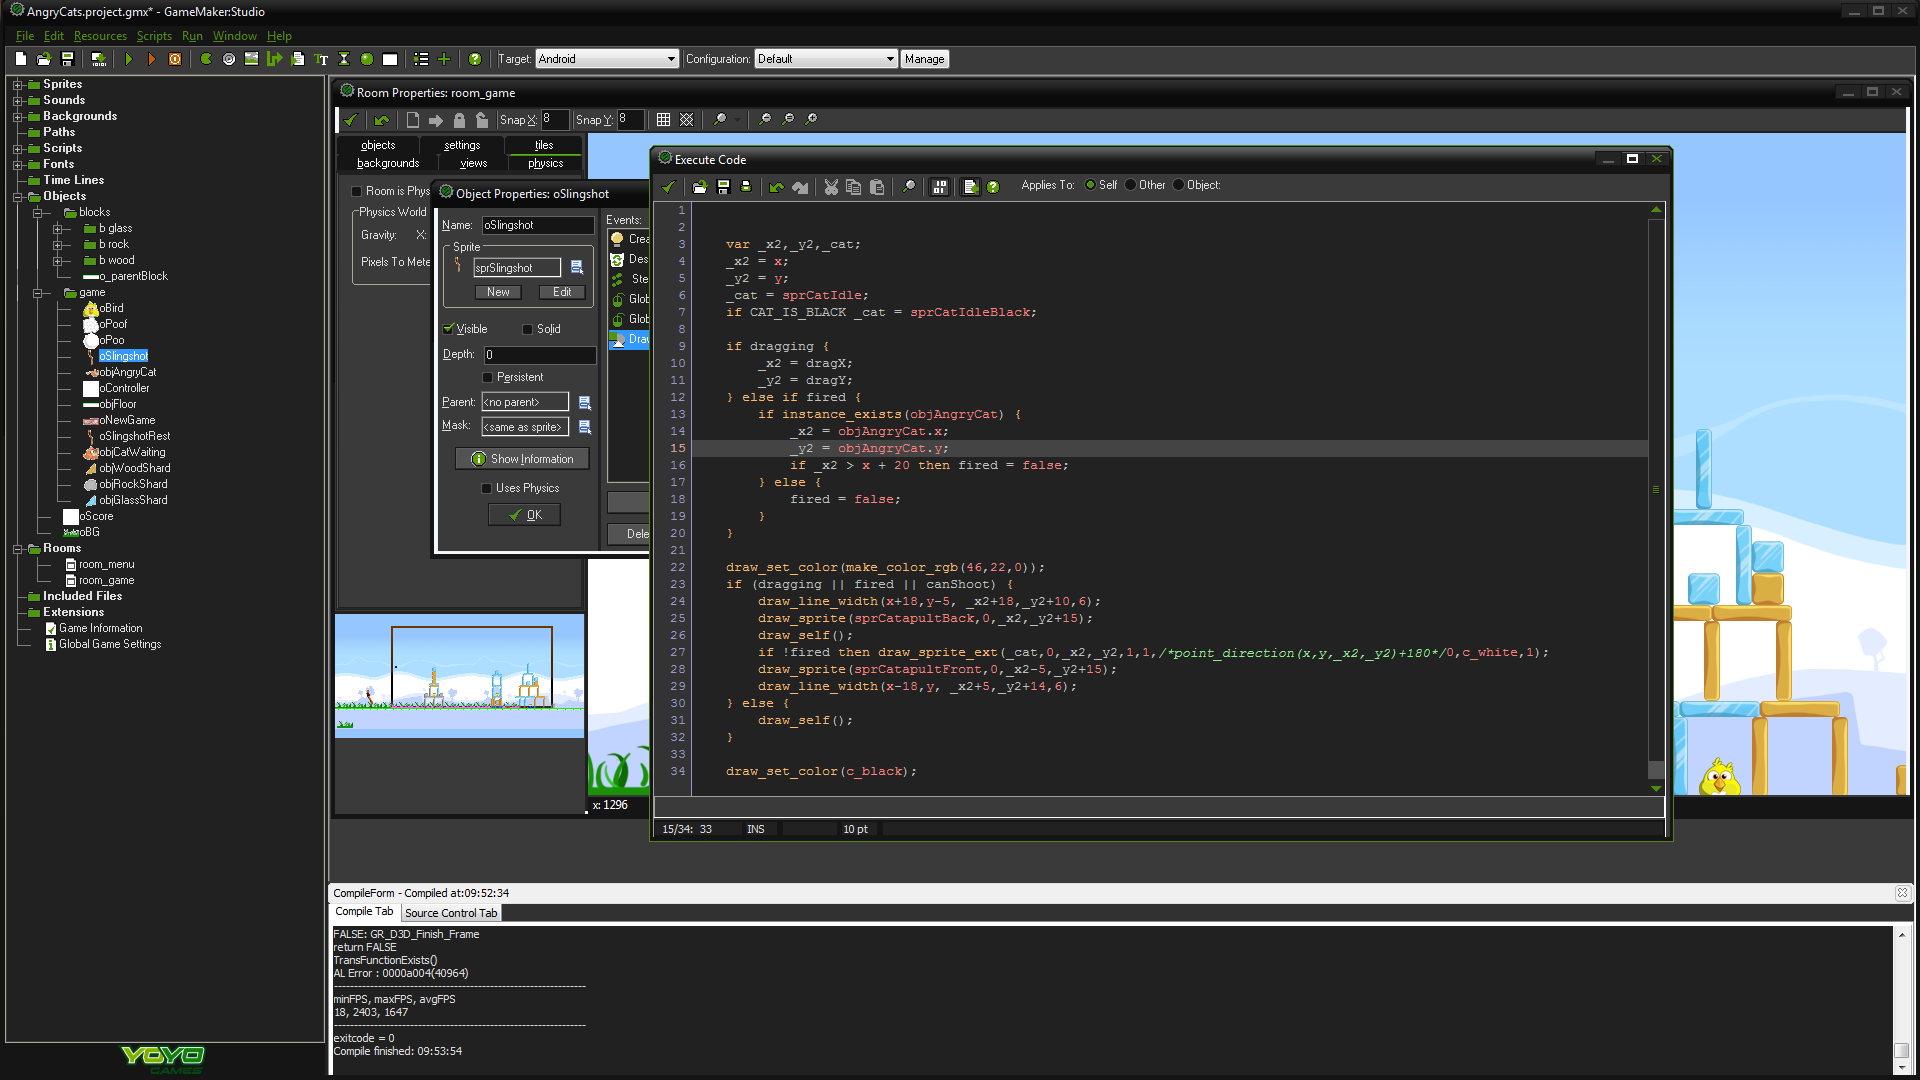 GameMaker Studio Arrives With Player Marketplace IOS Support - Game maker